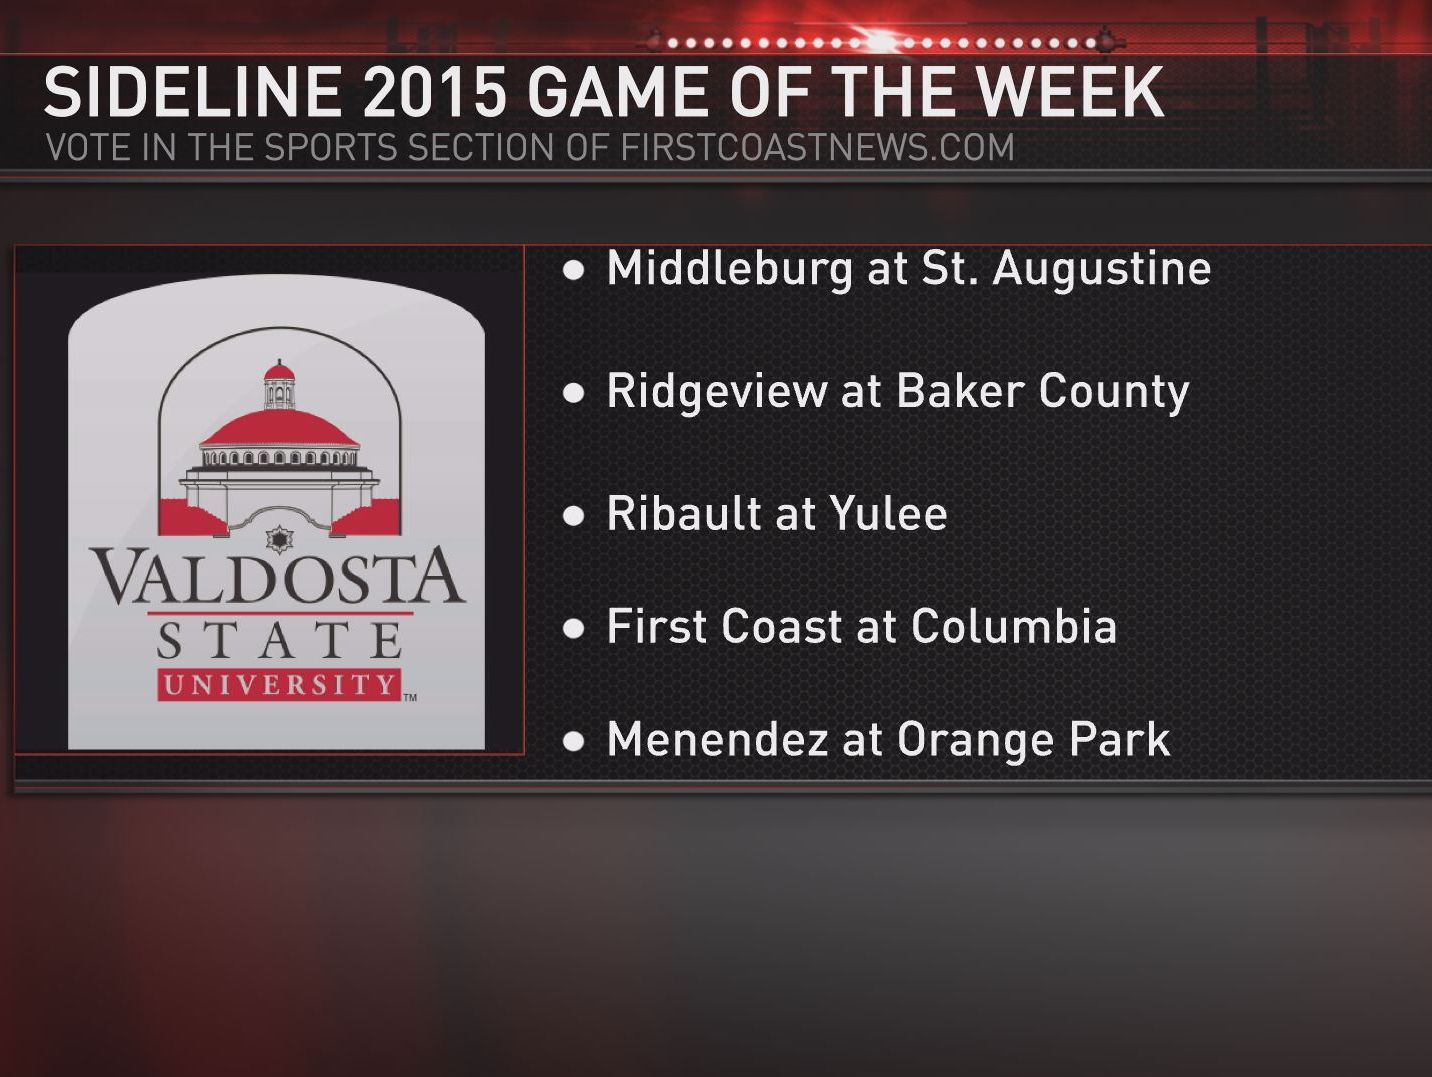 Sideline 2015 Game of the Week choices